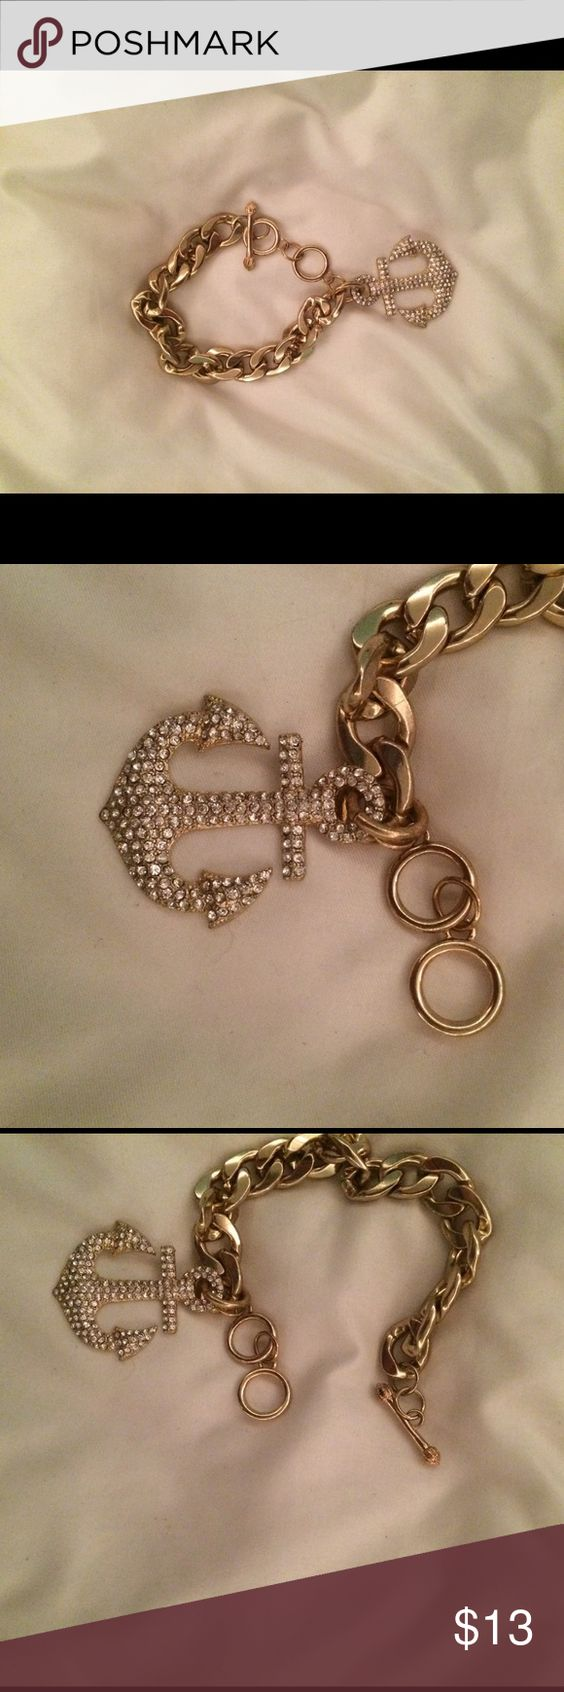 beautiful gold bracelet with anchor charm new condition! Charming Charlie Jewelry Bracelets